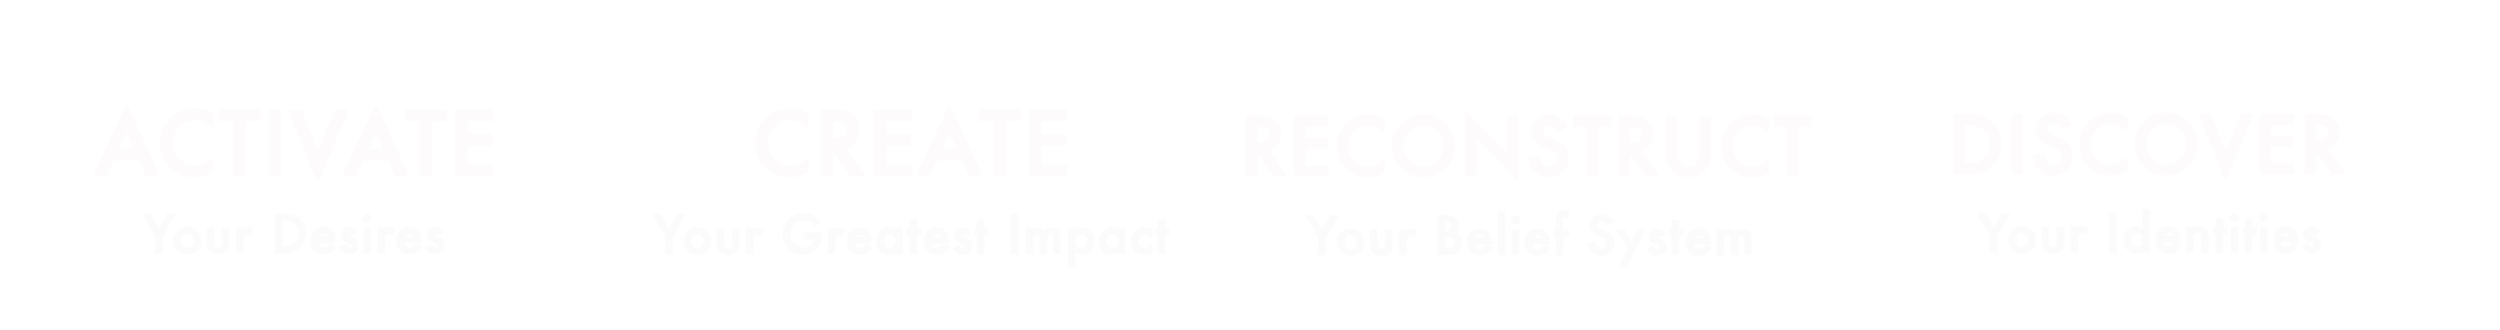 create discover reconstruct create.png